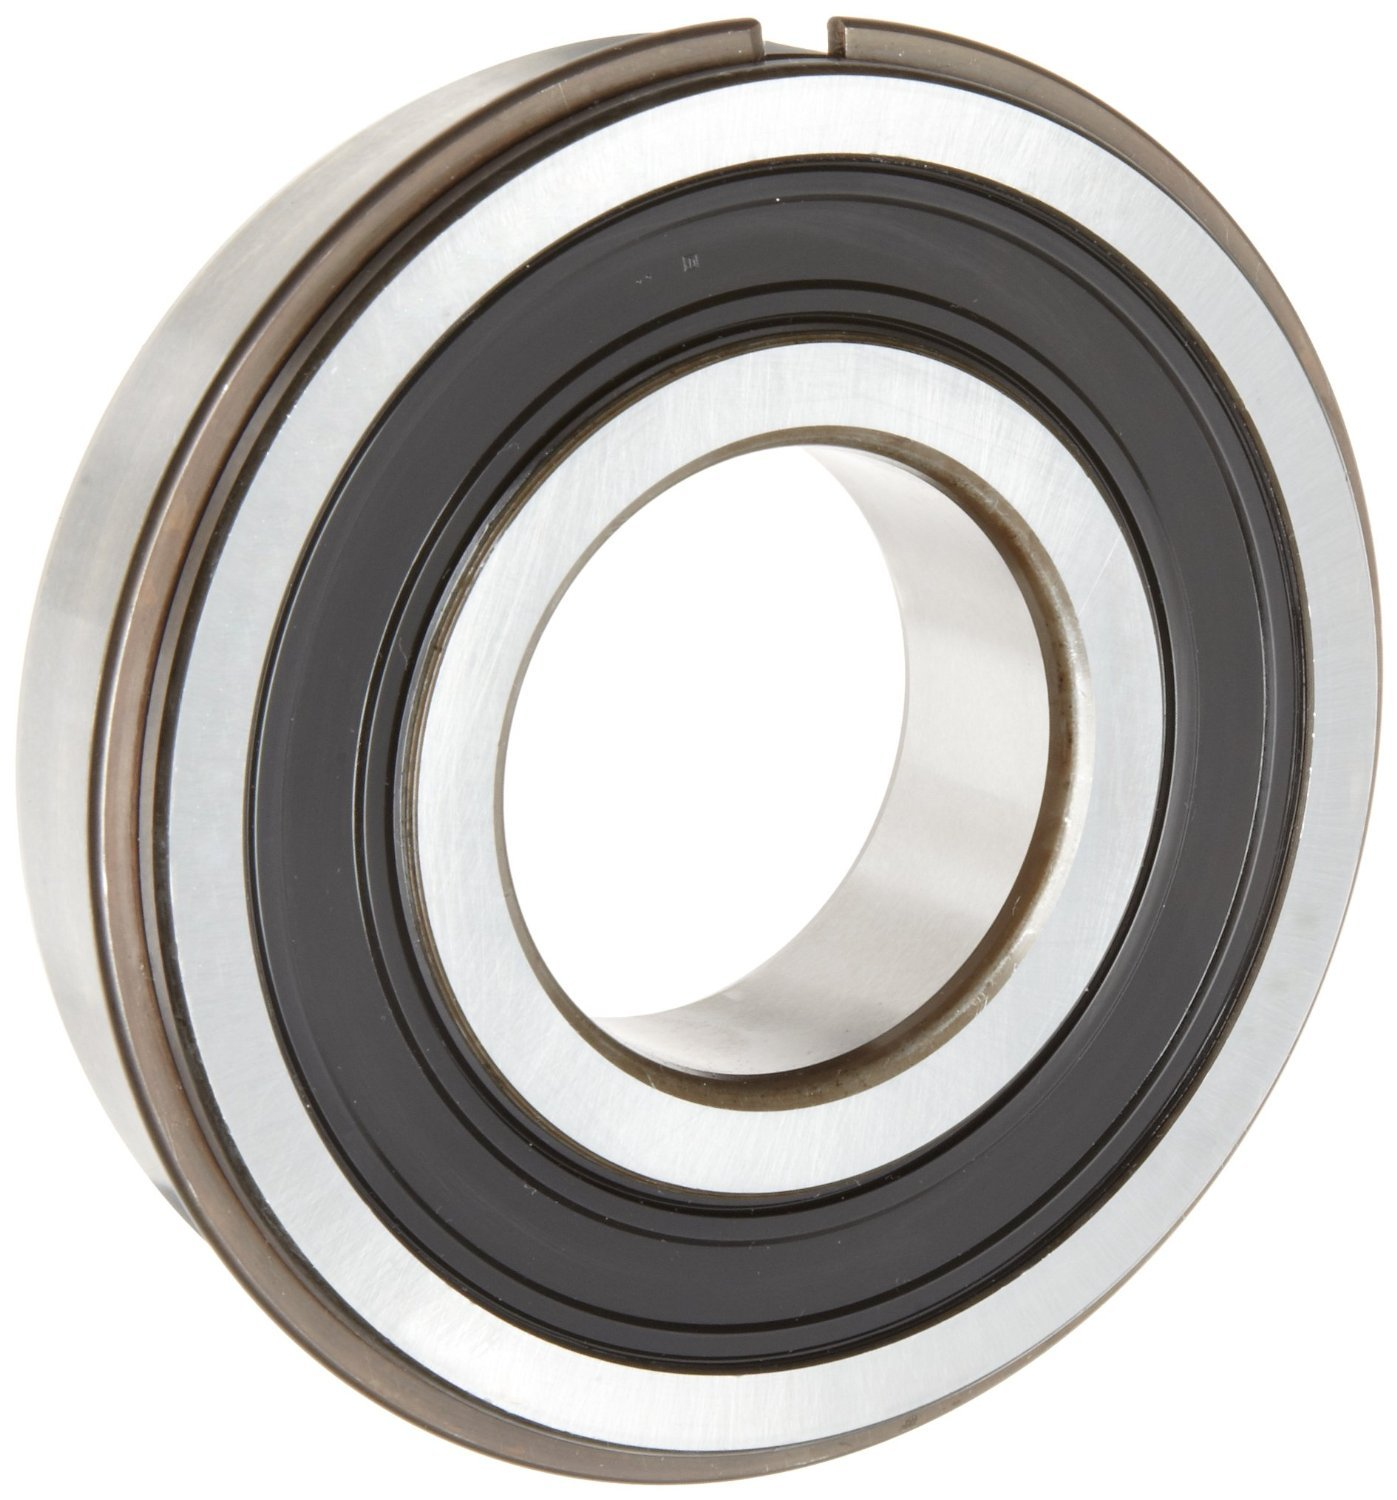 ORS 6205 2RS NR C3 Deep Groove Ball Bearing, Single Row, Double Sealed, Snap Ring, Steel Cage, C3 Clearance, ABEC 1 Precision, 25mm Bore, 52mm OD, 15mm Width ORS Bearings Inc. 6205-2RS NR C3 G93